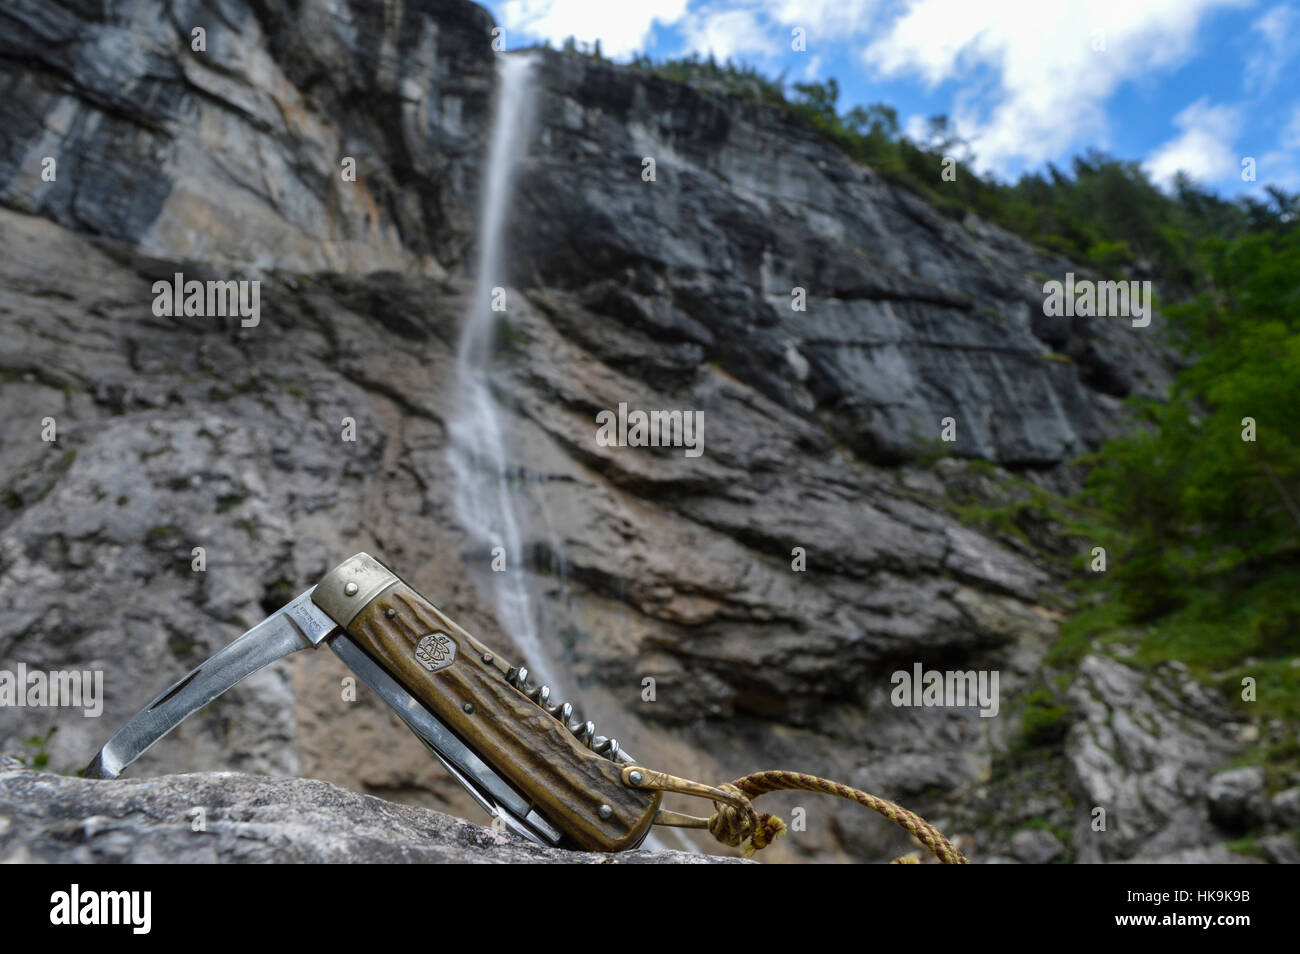 Pocket knife and Waterfall - Stock Image